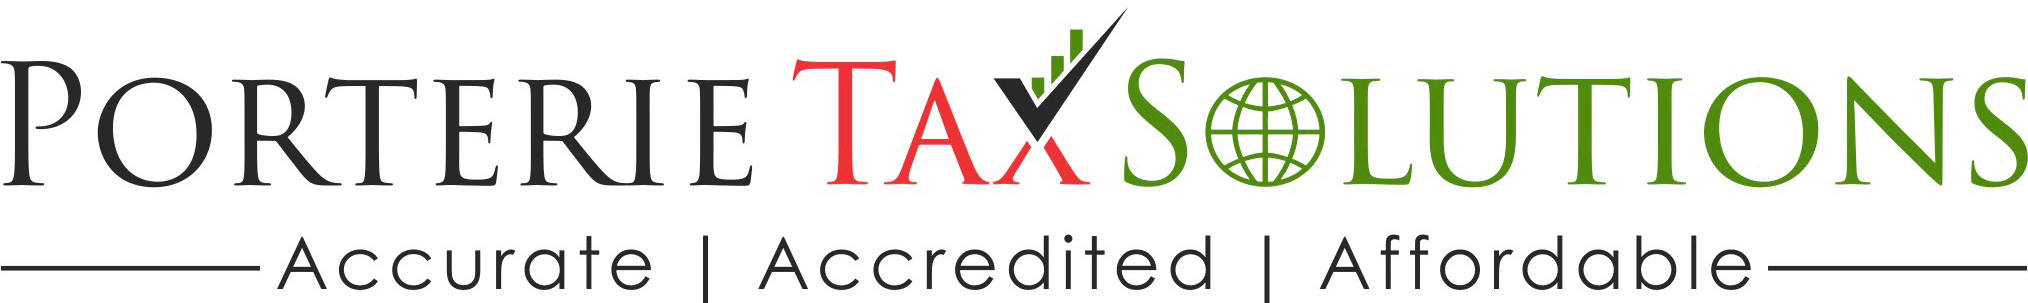 Porterie Tax Solutions